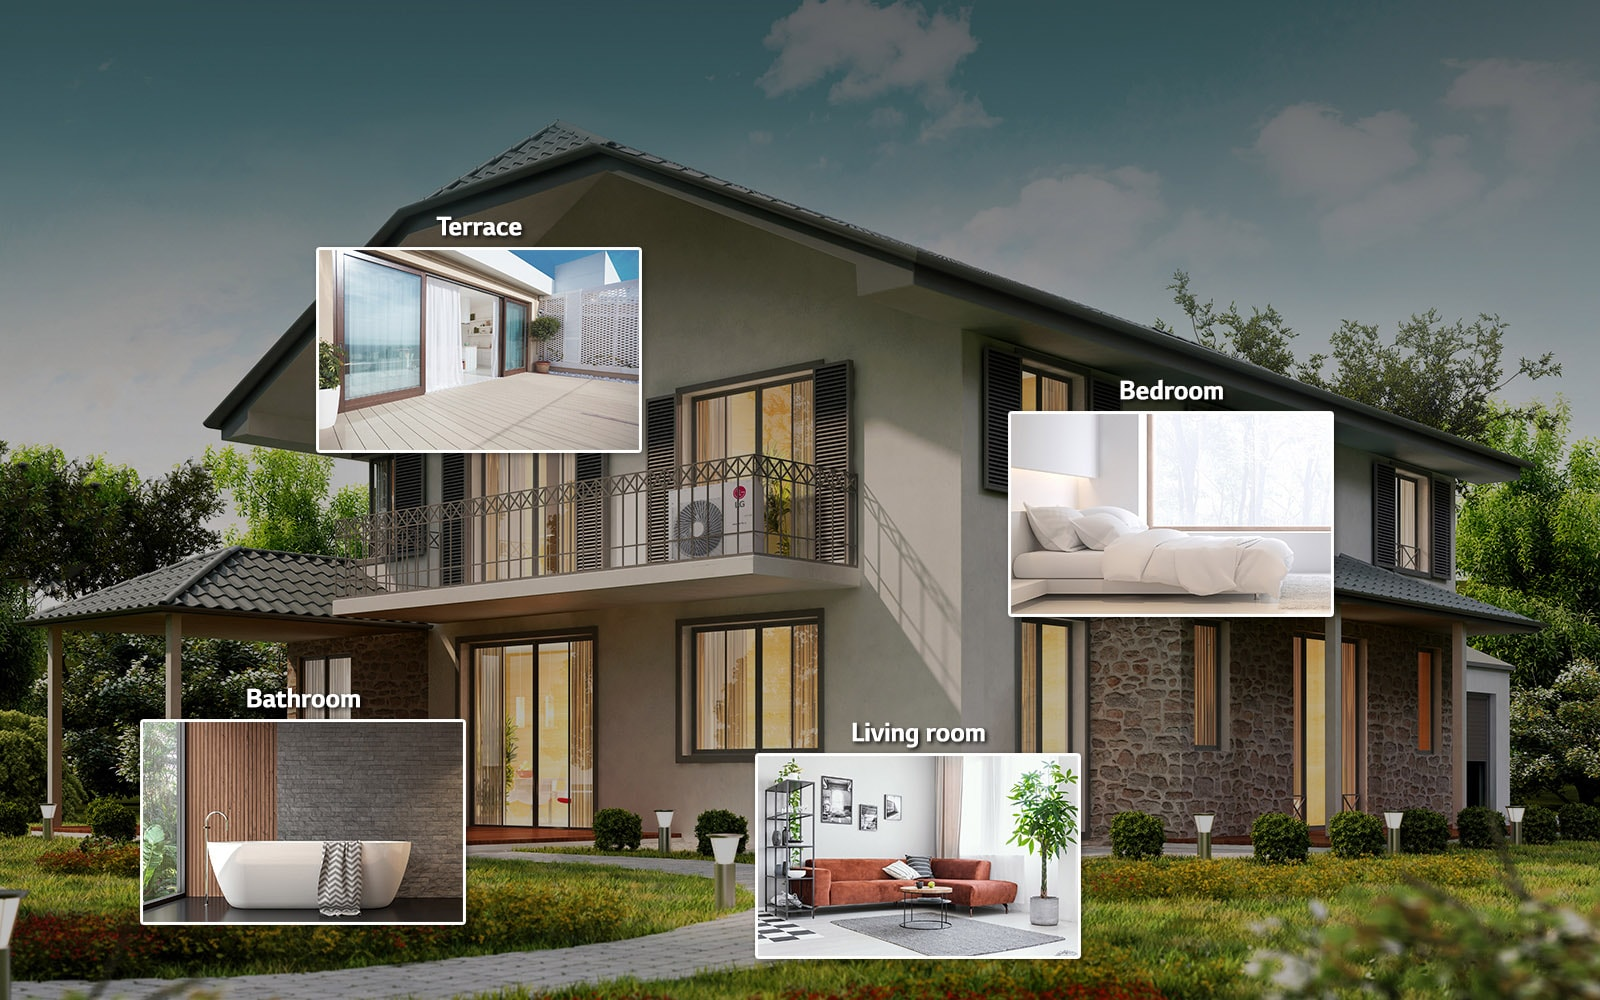 An image of a house with four thumbnails of a living room, a bathroom, a bedroom, and a terrace.